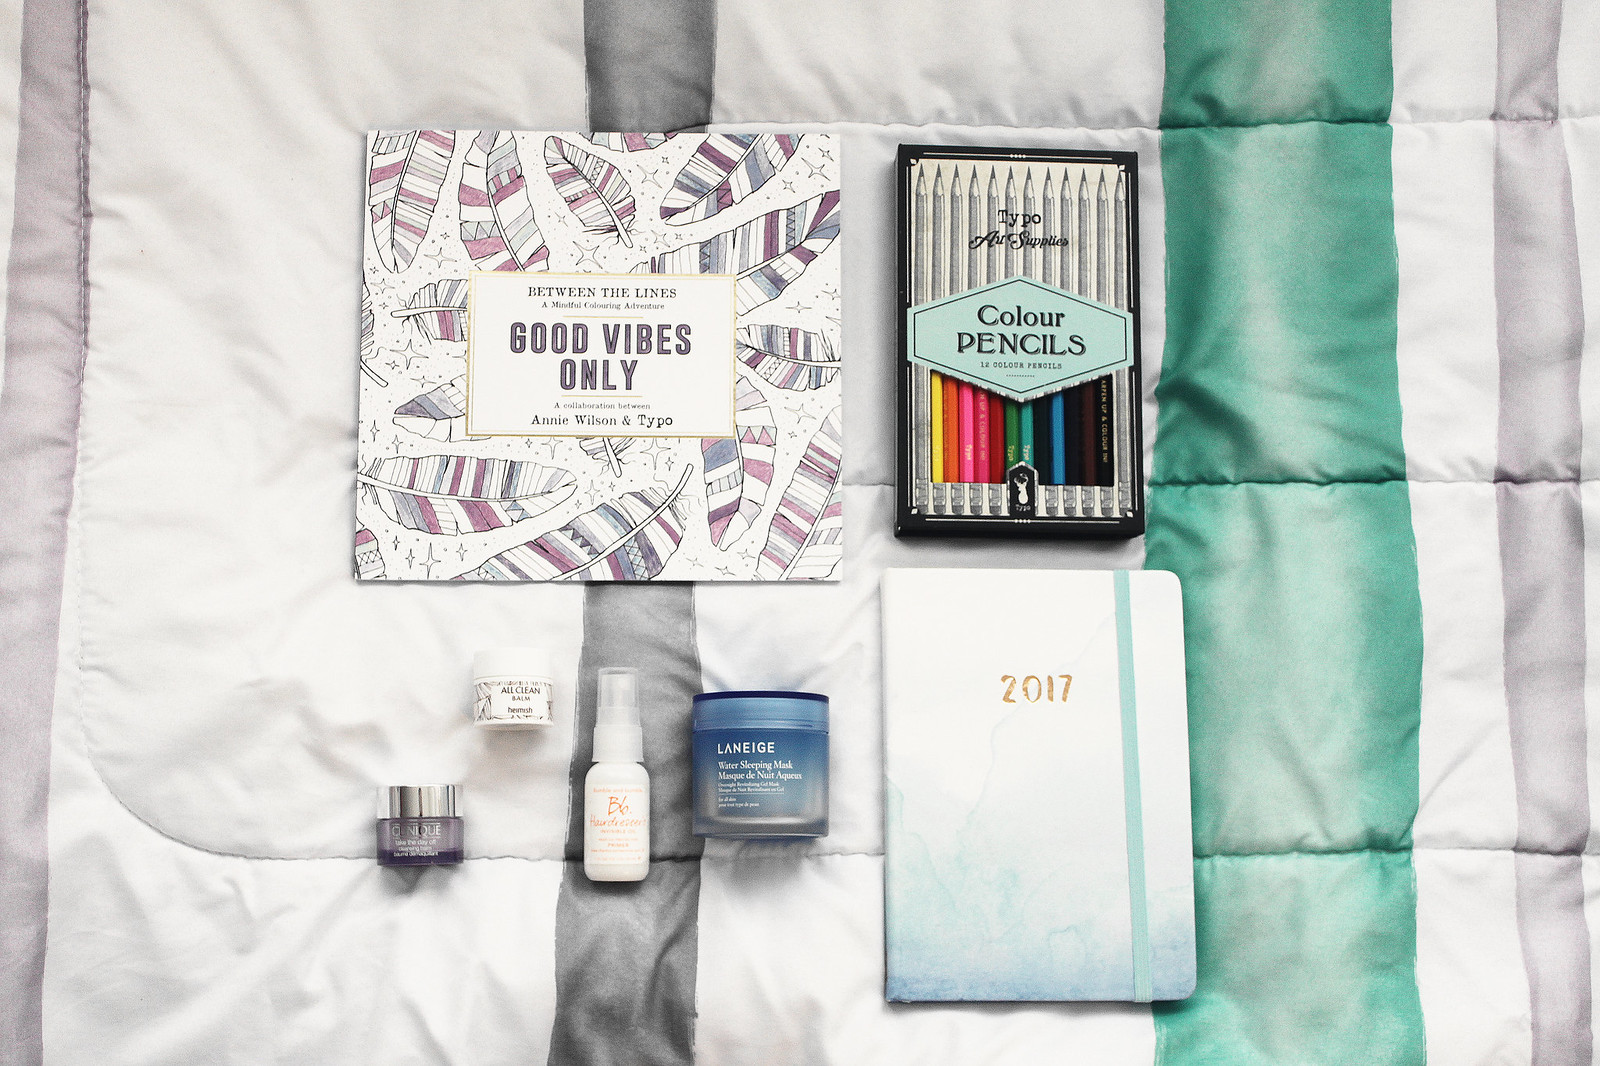 3156-lifestyle-fashion-beauty-makeup-typo-cottonon-clothestoyouuu-elizabeeetht-minimalistic-flatlay